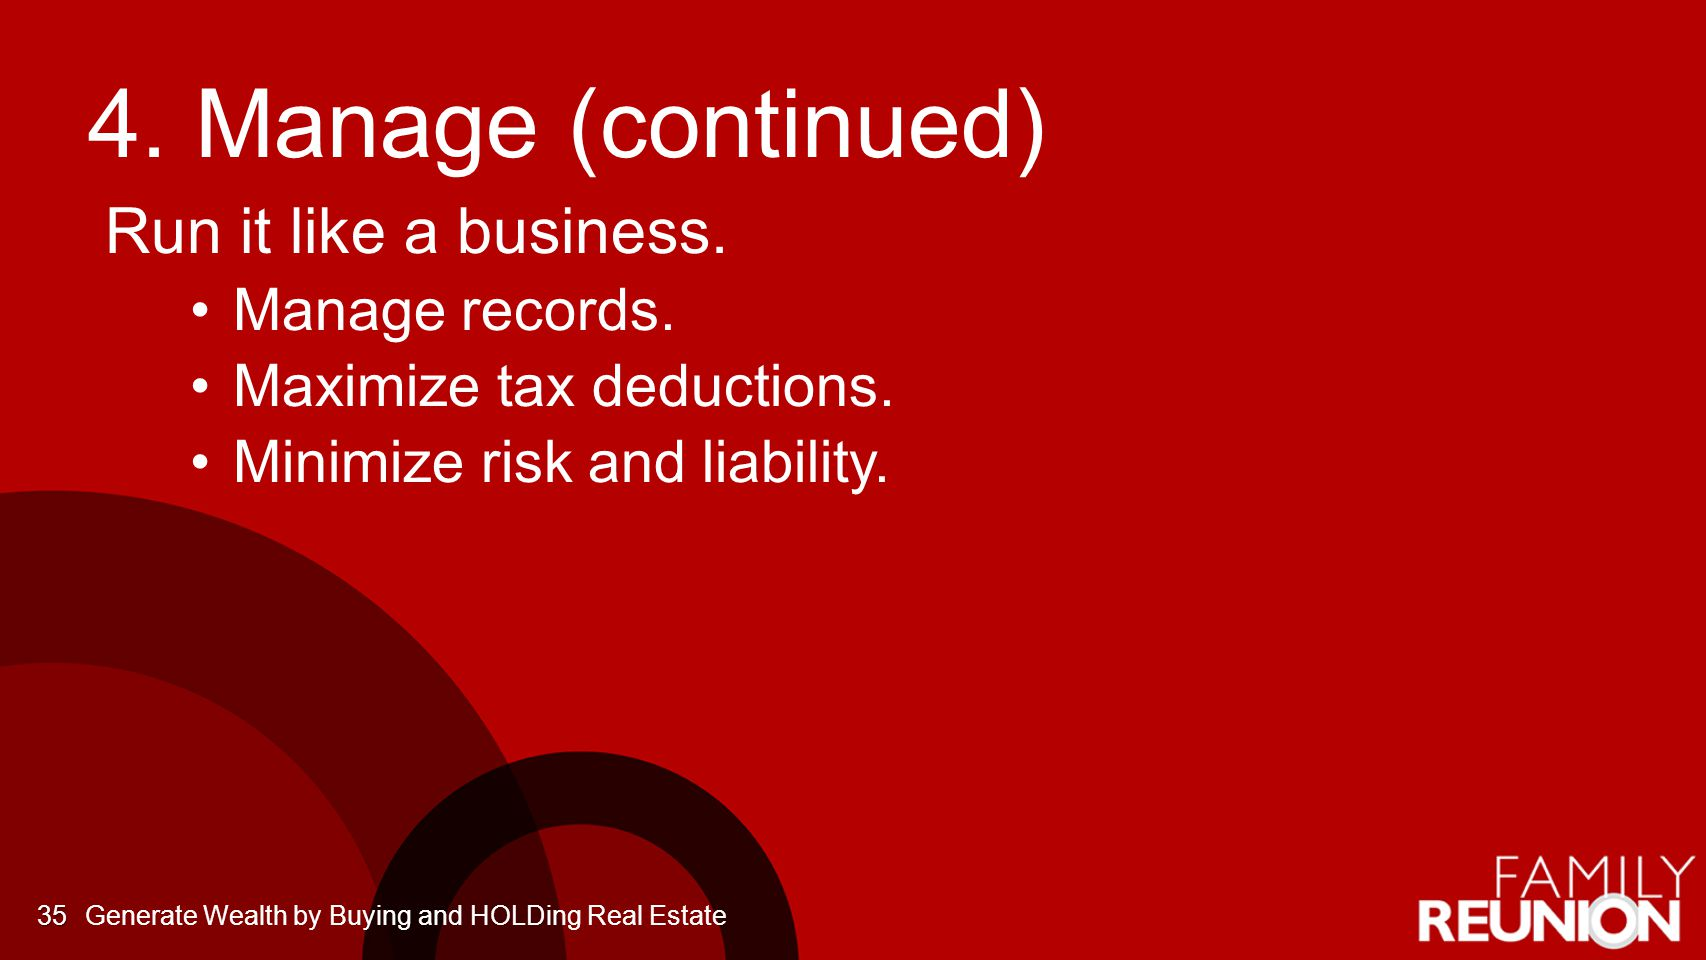 4.Manage (continued) Run it like a business. Manage records.